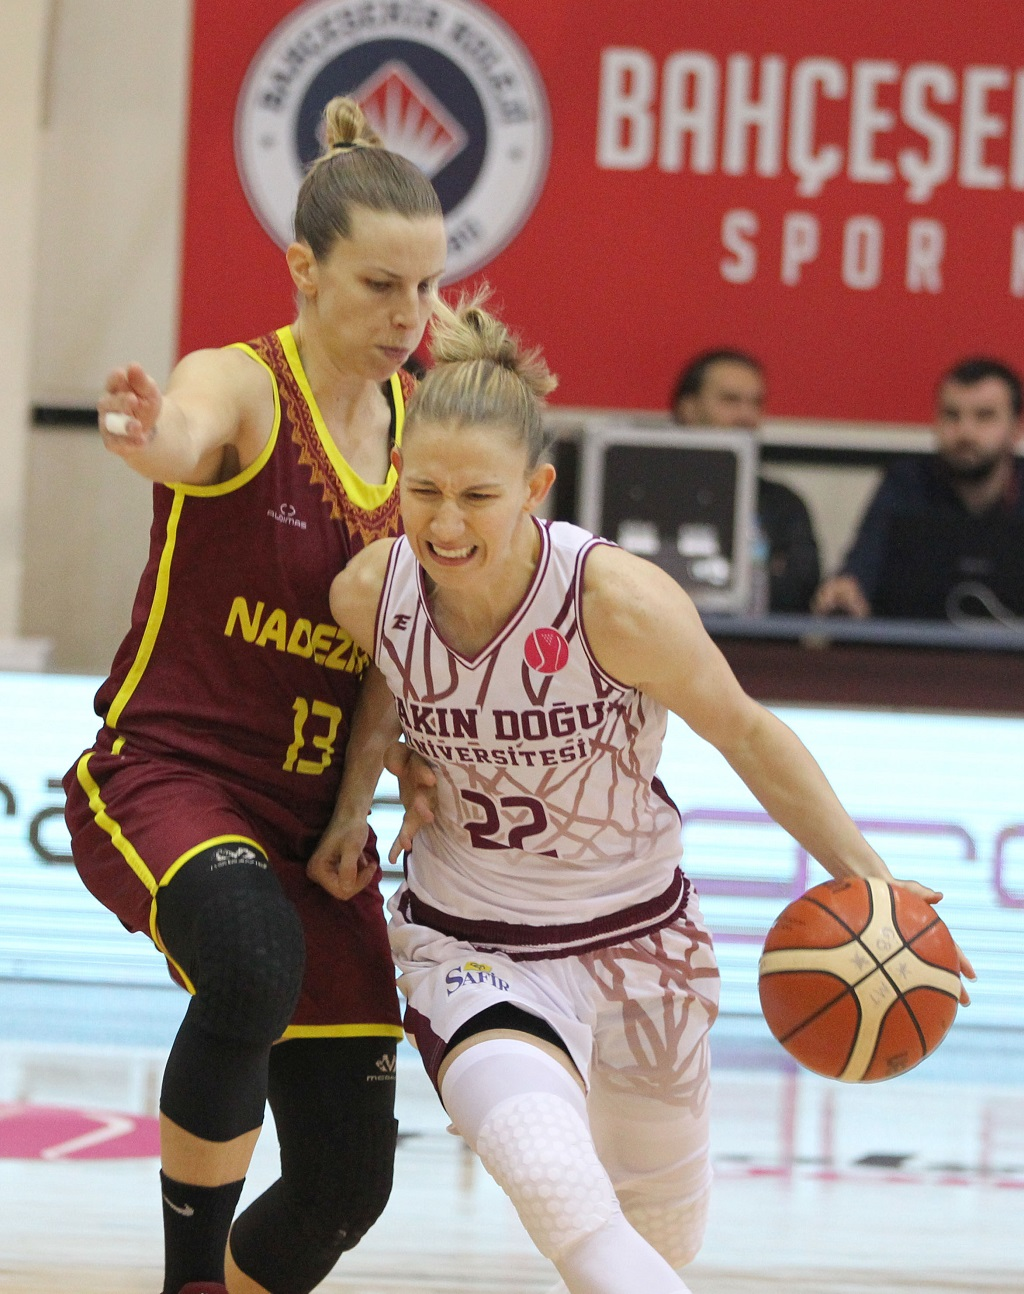 Near East University is at the top in FIBA EuroLeague as well….Near East Universiy: 93 – Nadezhda Orenburg: 71